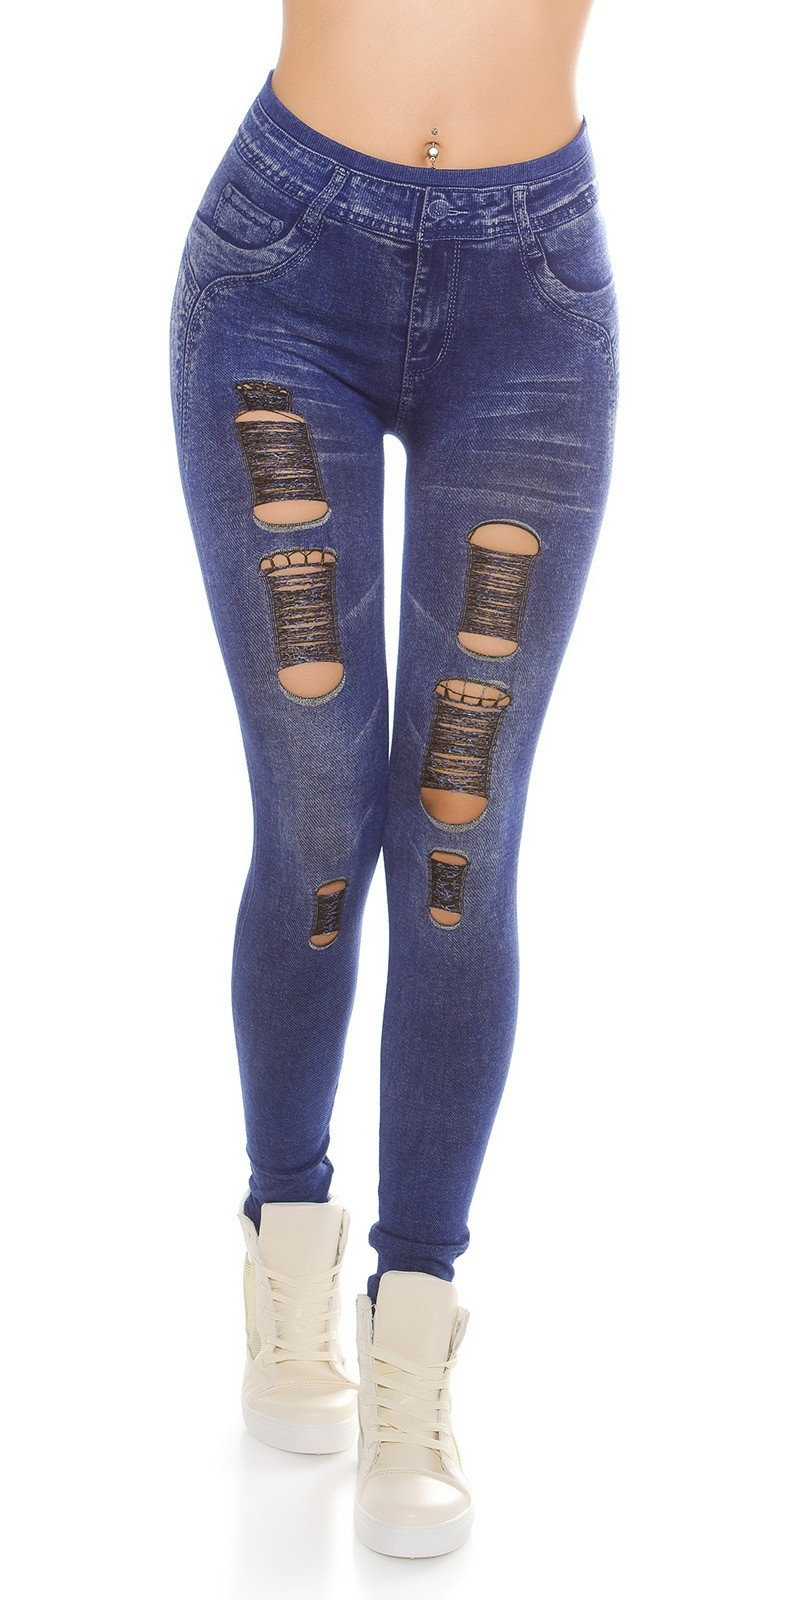 Trendy Jeanslook-Leggins with cracks Lightblue